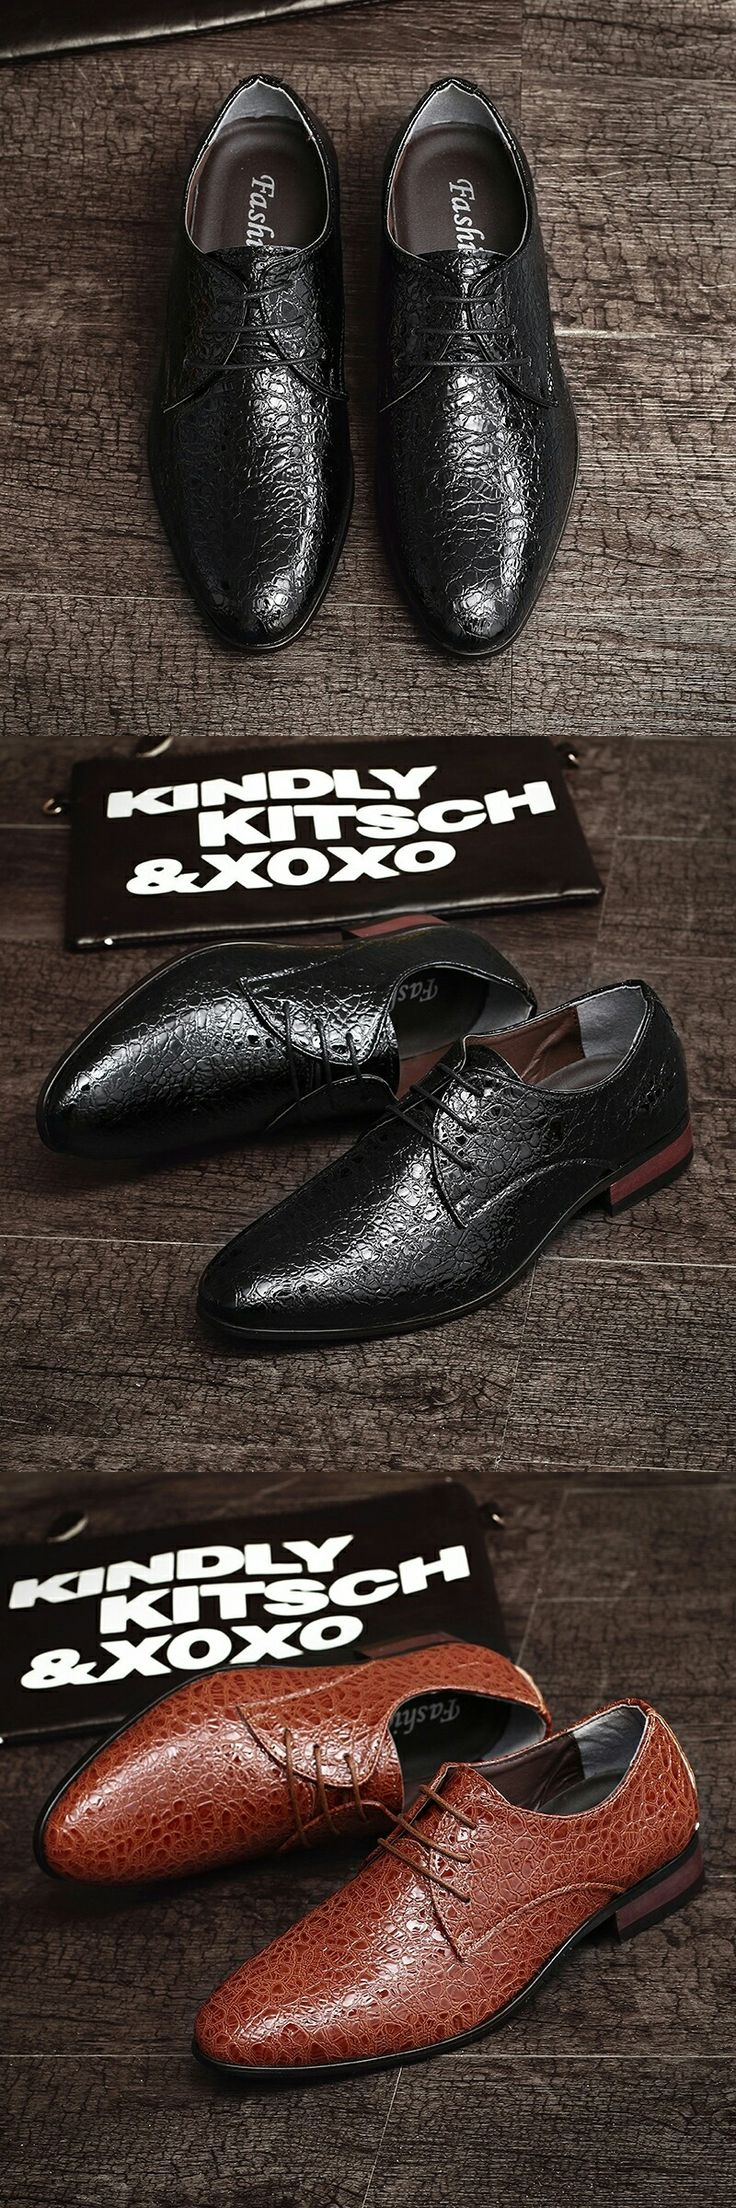 New Arrival Spring Luxury Brand Men Oxfords Shoes High Quality Business Derby Dress Shoes Calcado Masculino Wedding Shoes